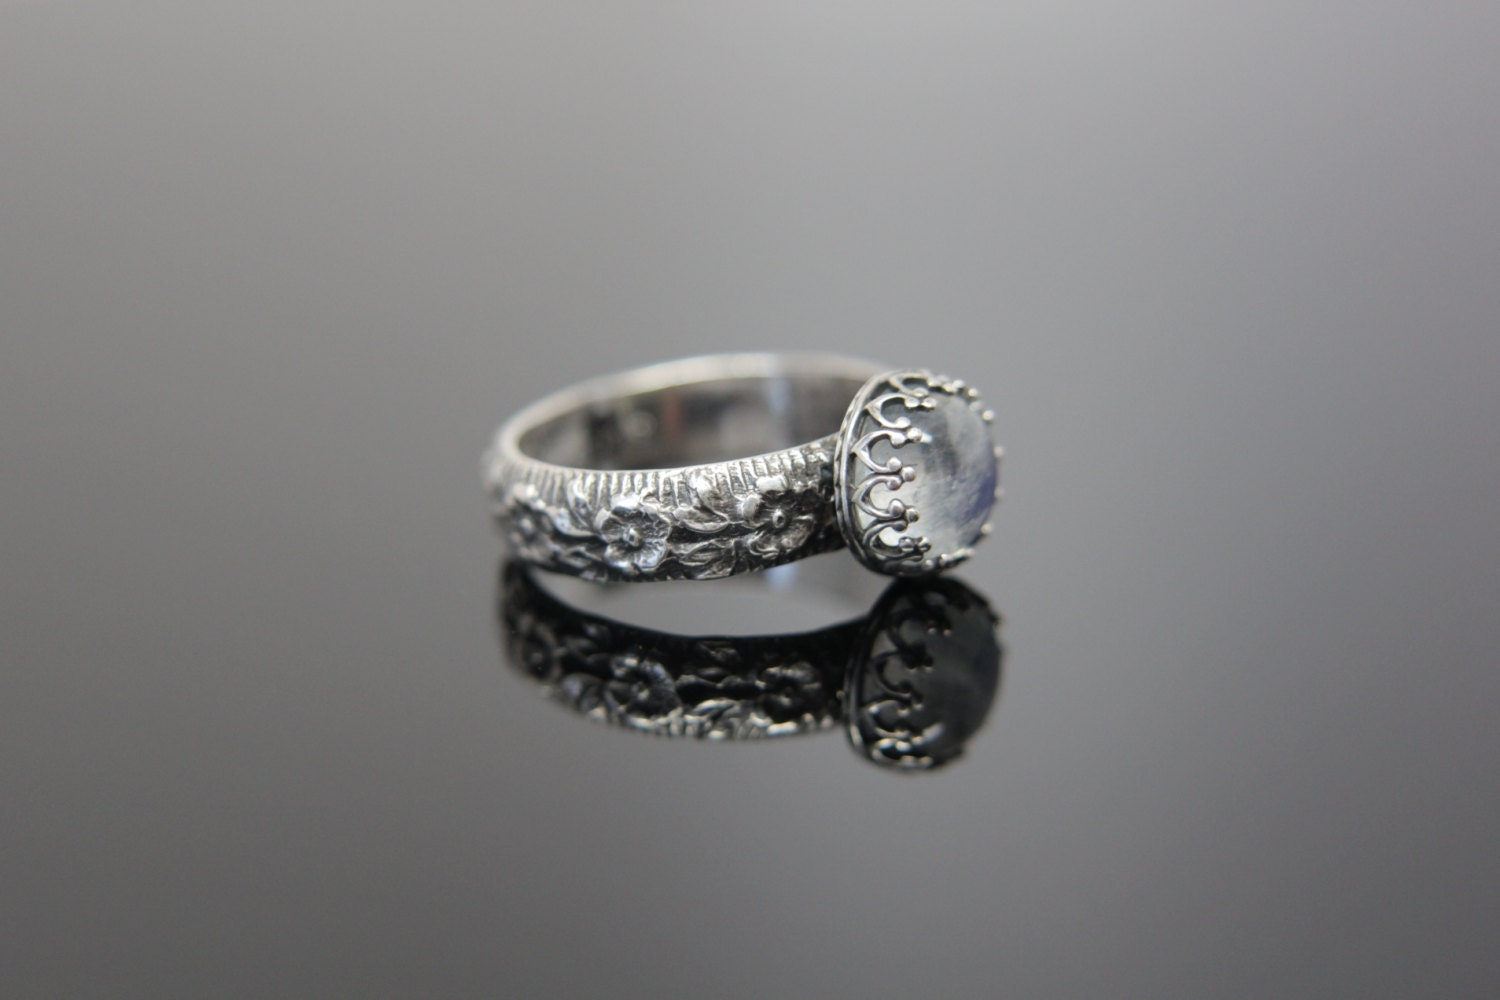 Daisy Chain Ring Sterling Silver Feminine floral patterned